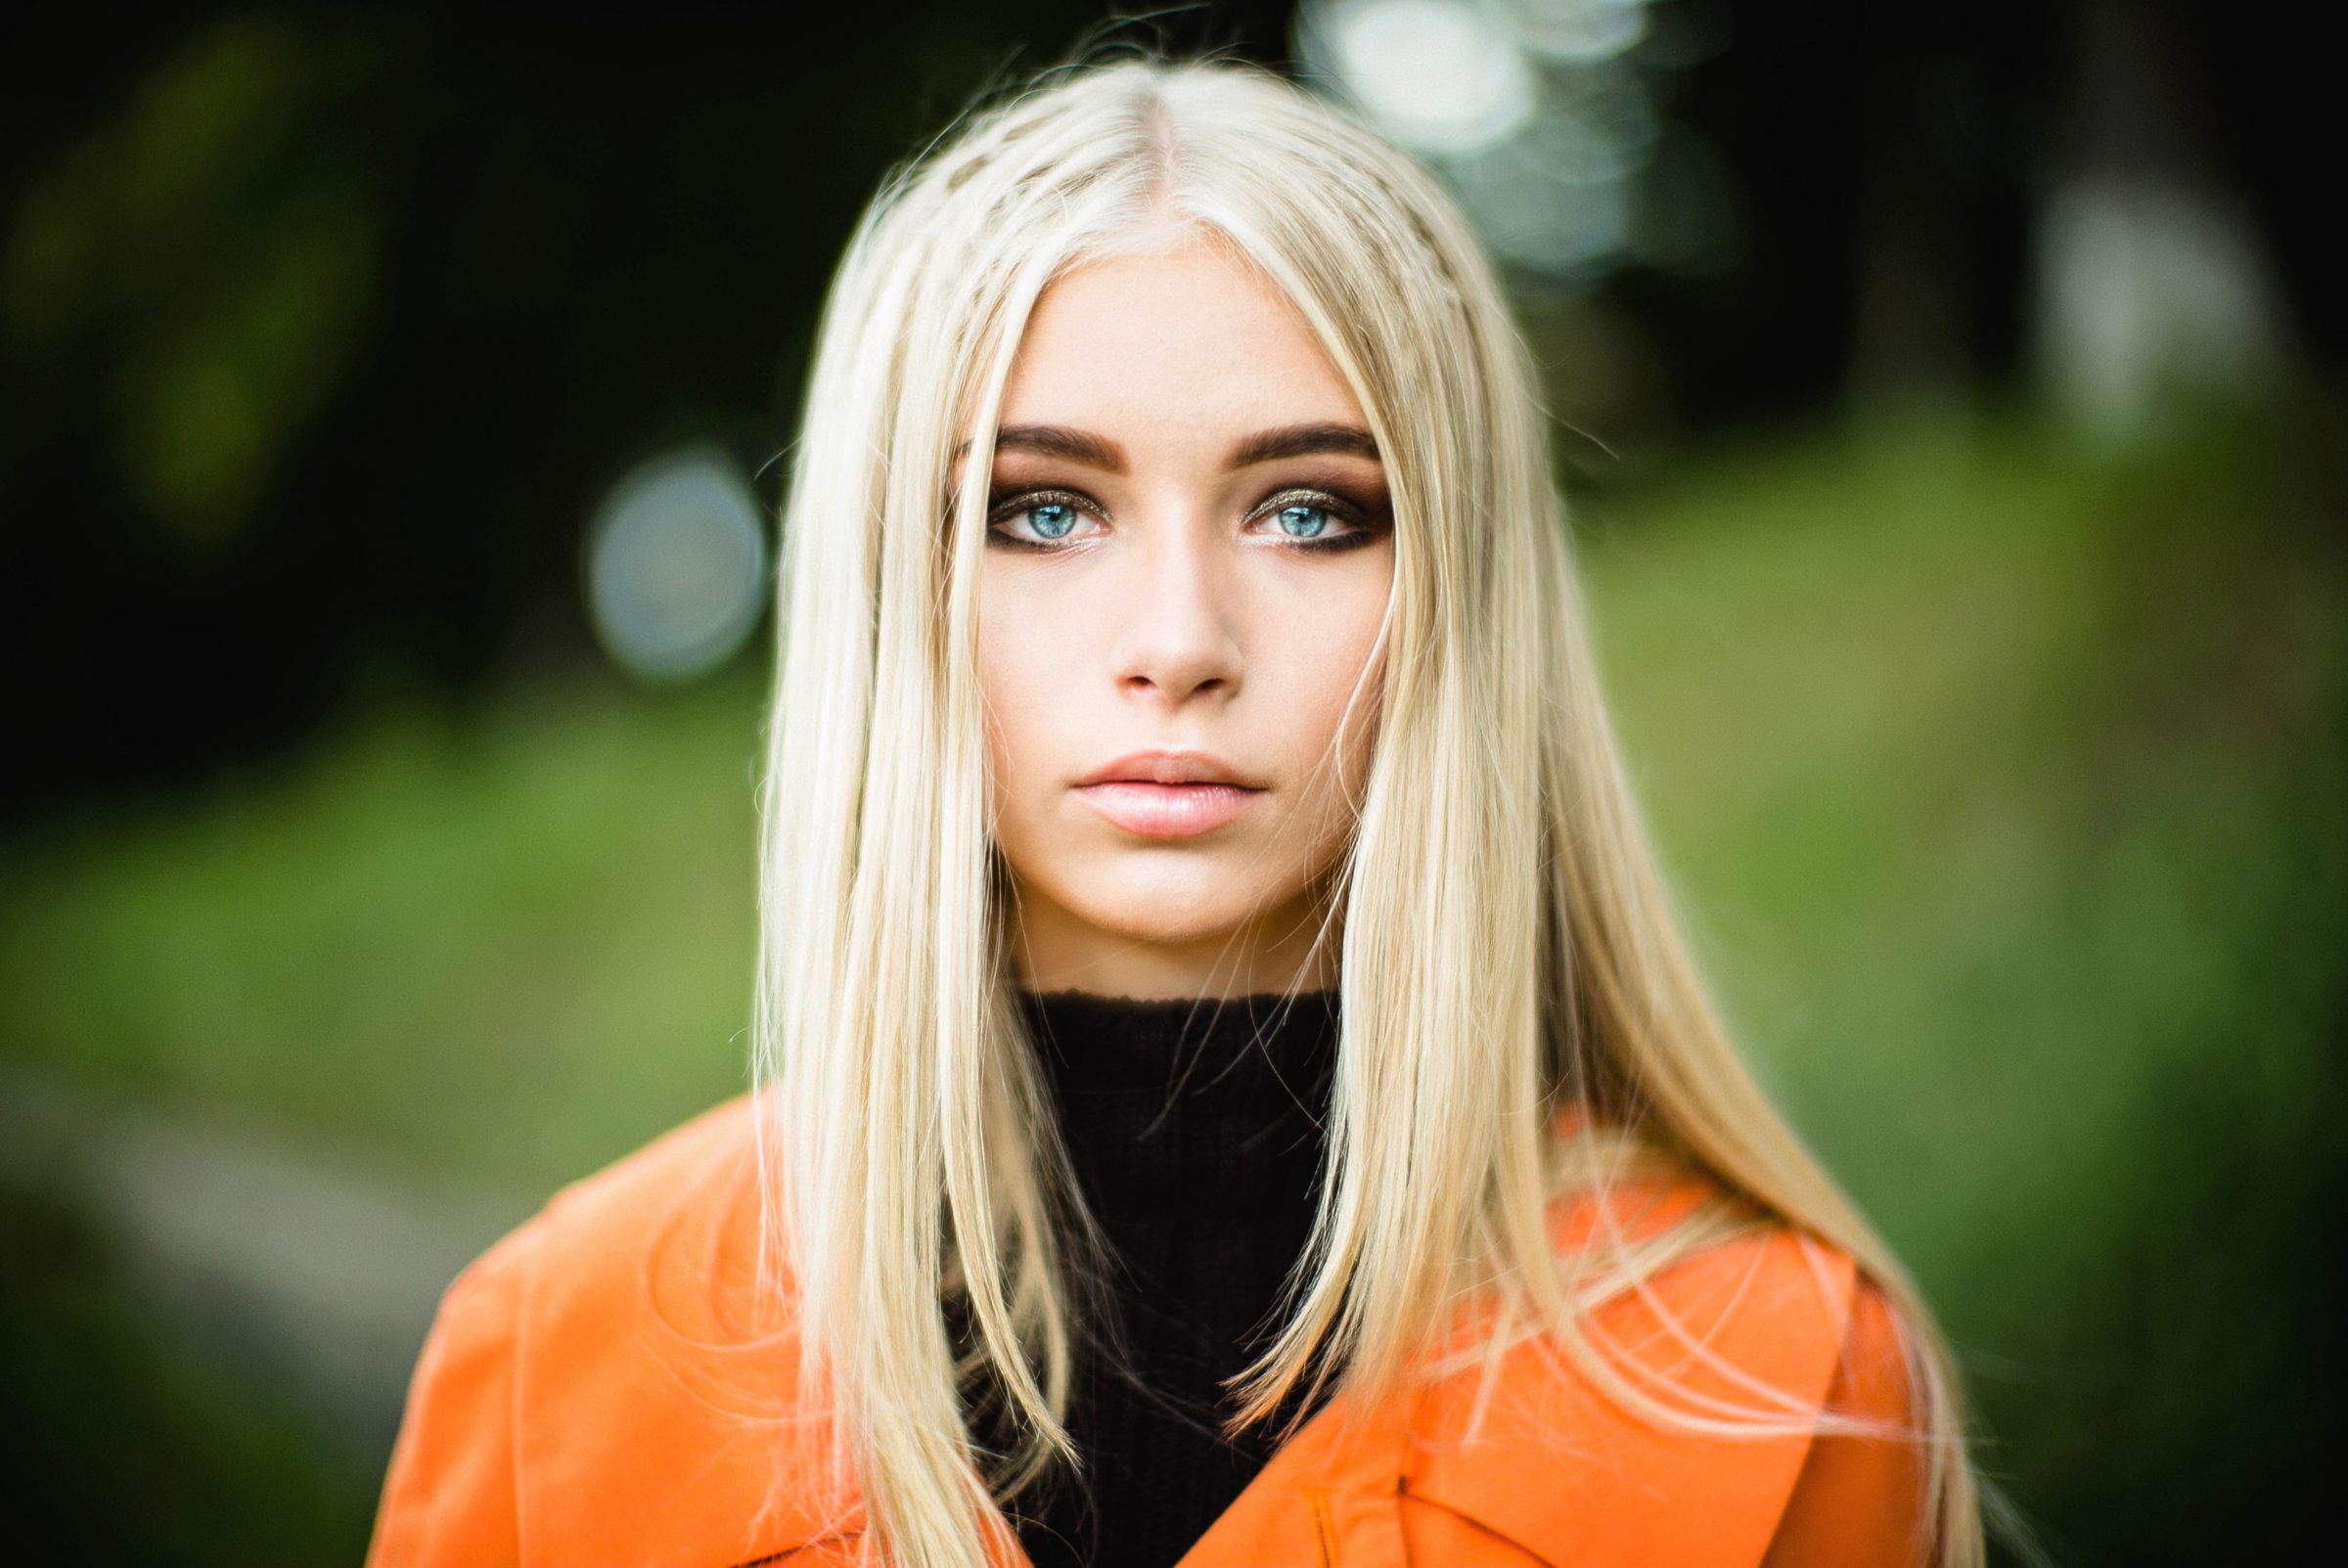 ukraine girl agency model blonde hair blue eyes photo